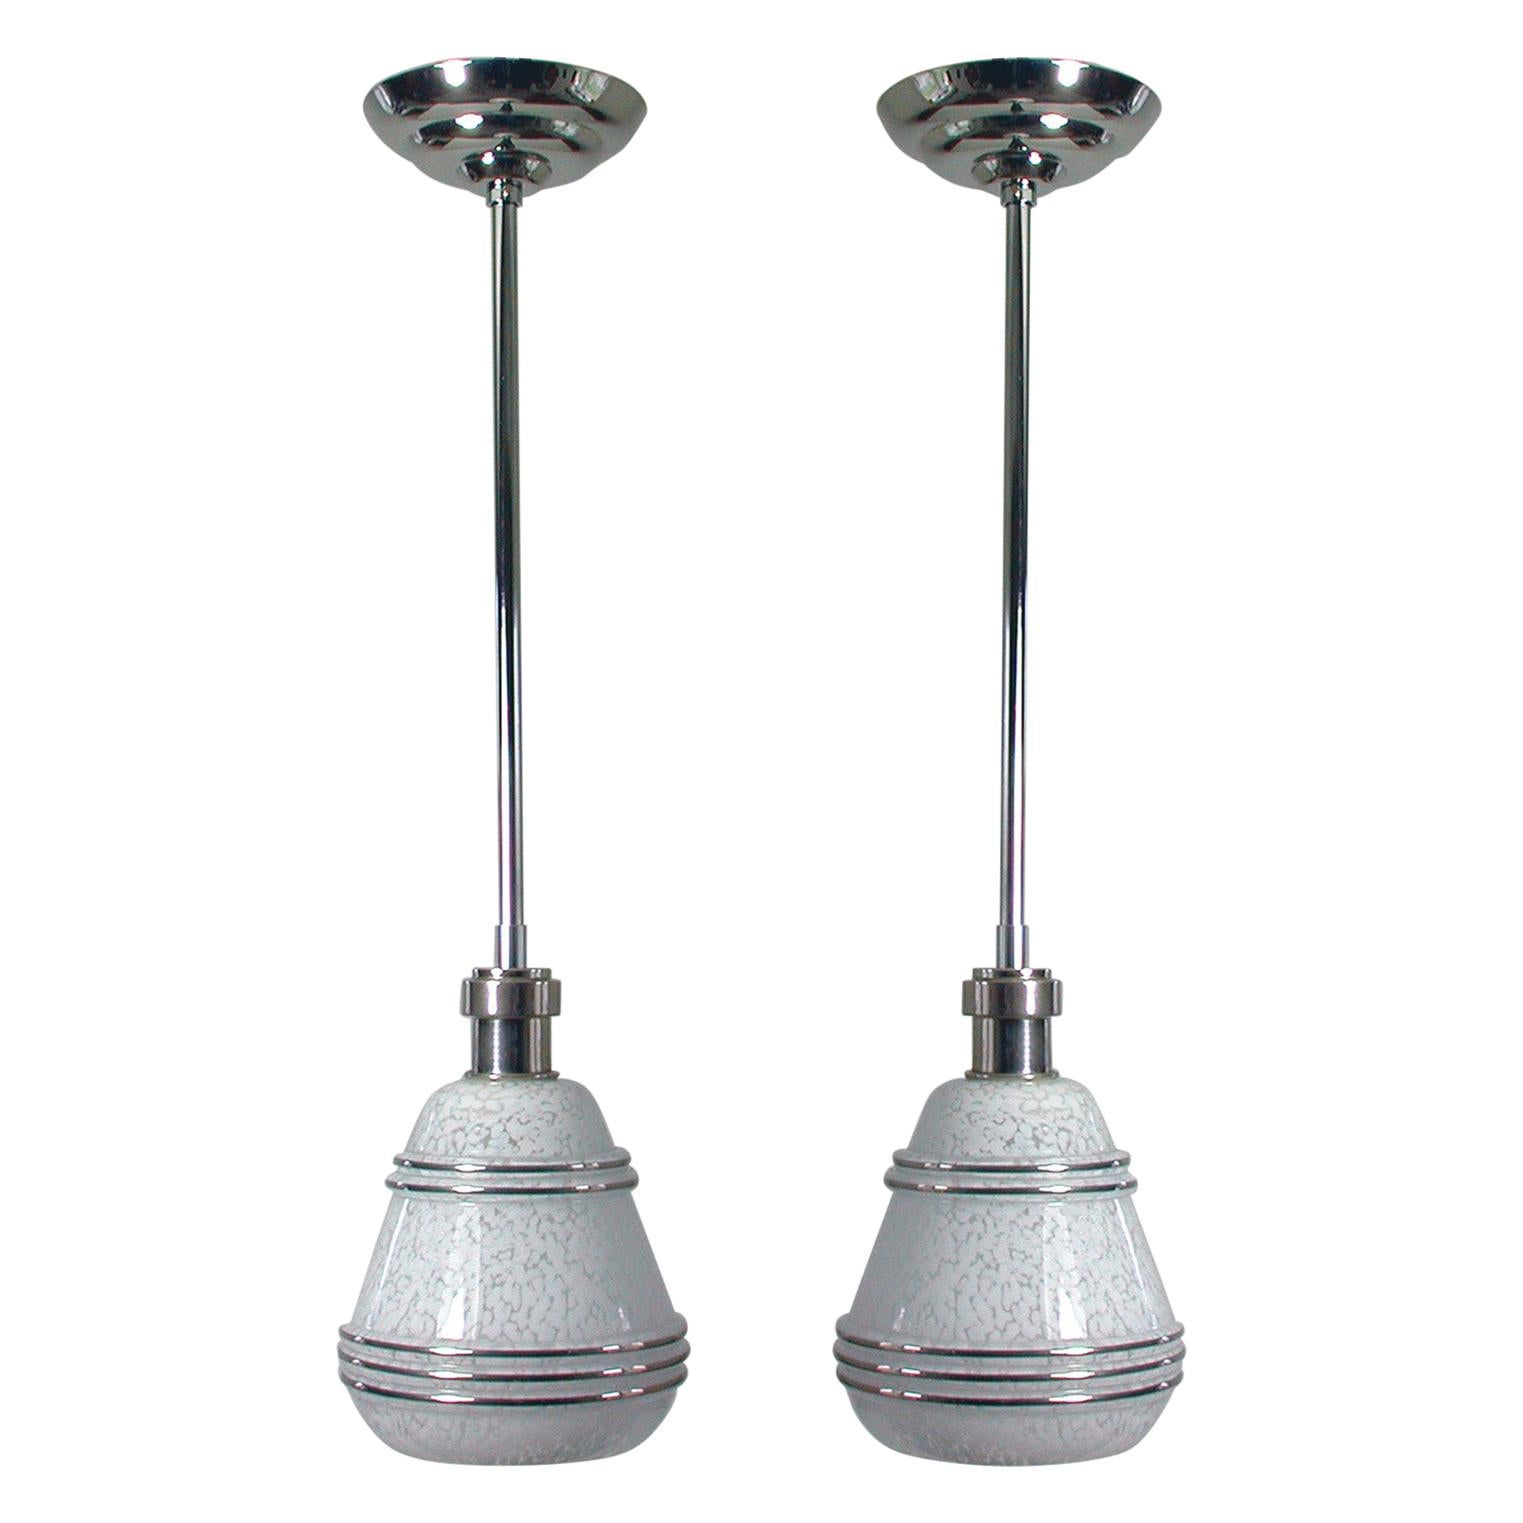 French Art Deco Glass and Chrome Pendants, 1930s-1940s, Set of 2